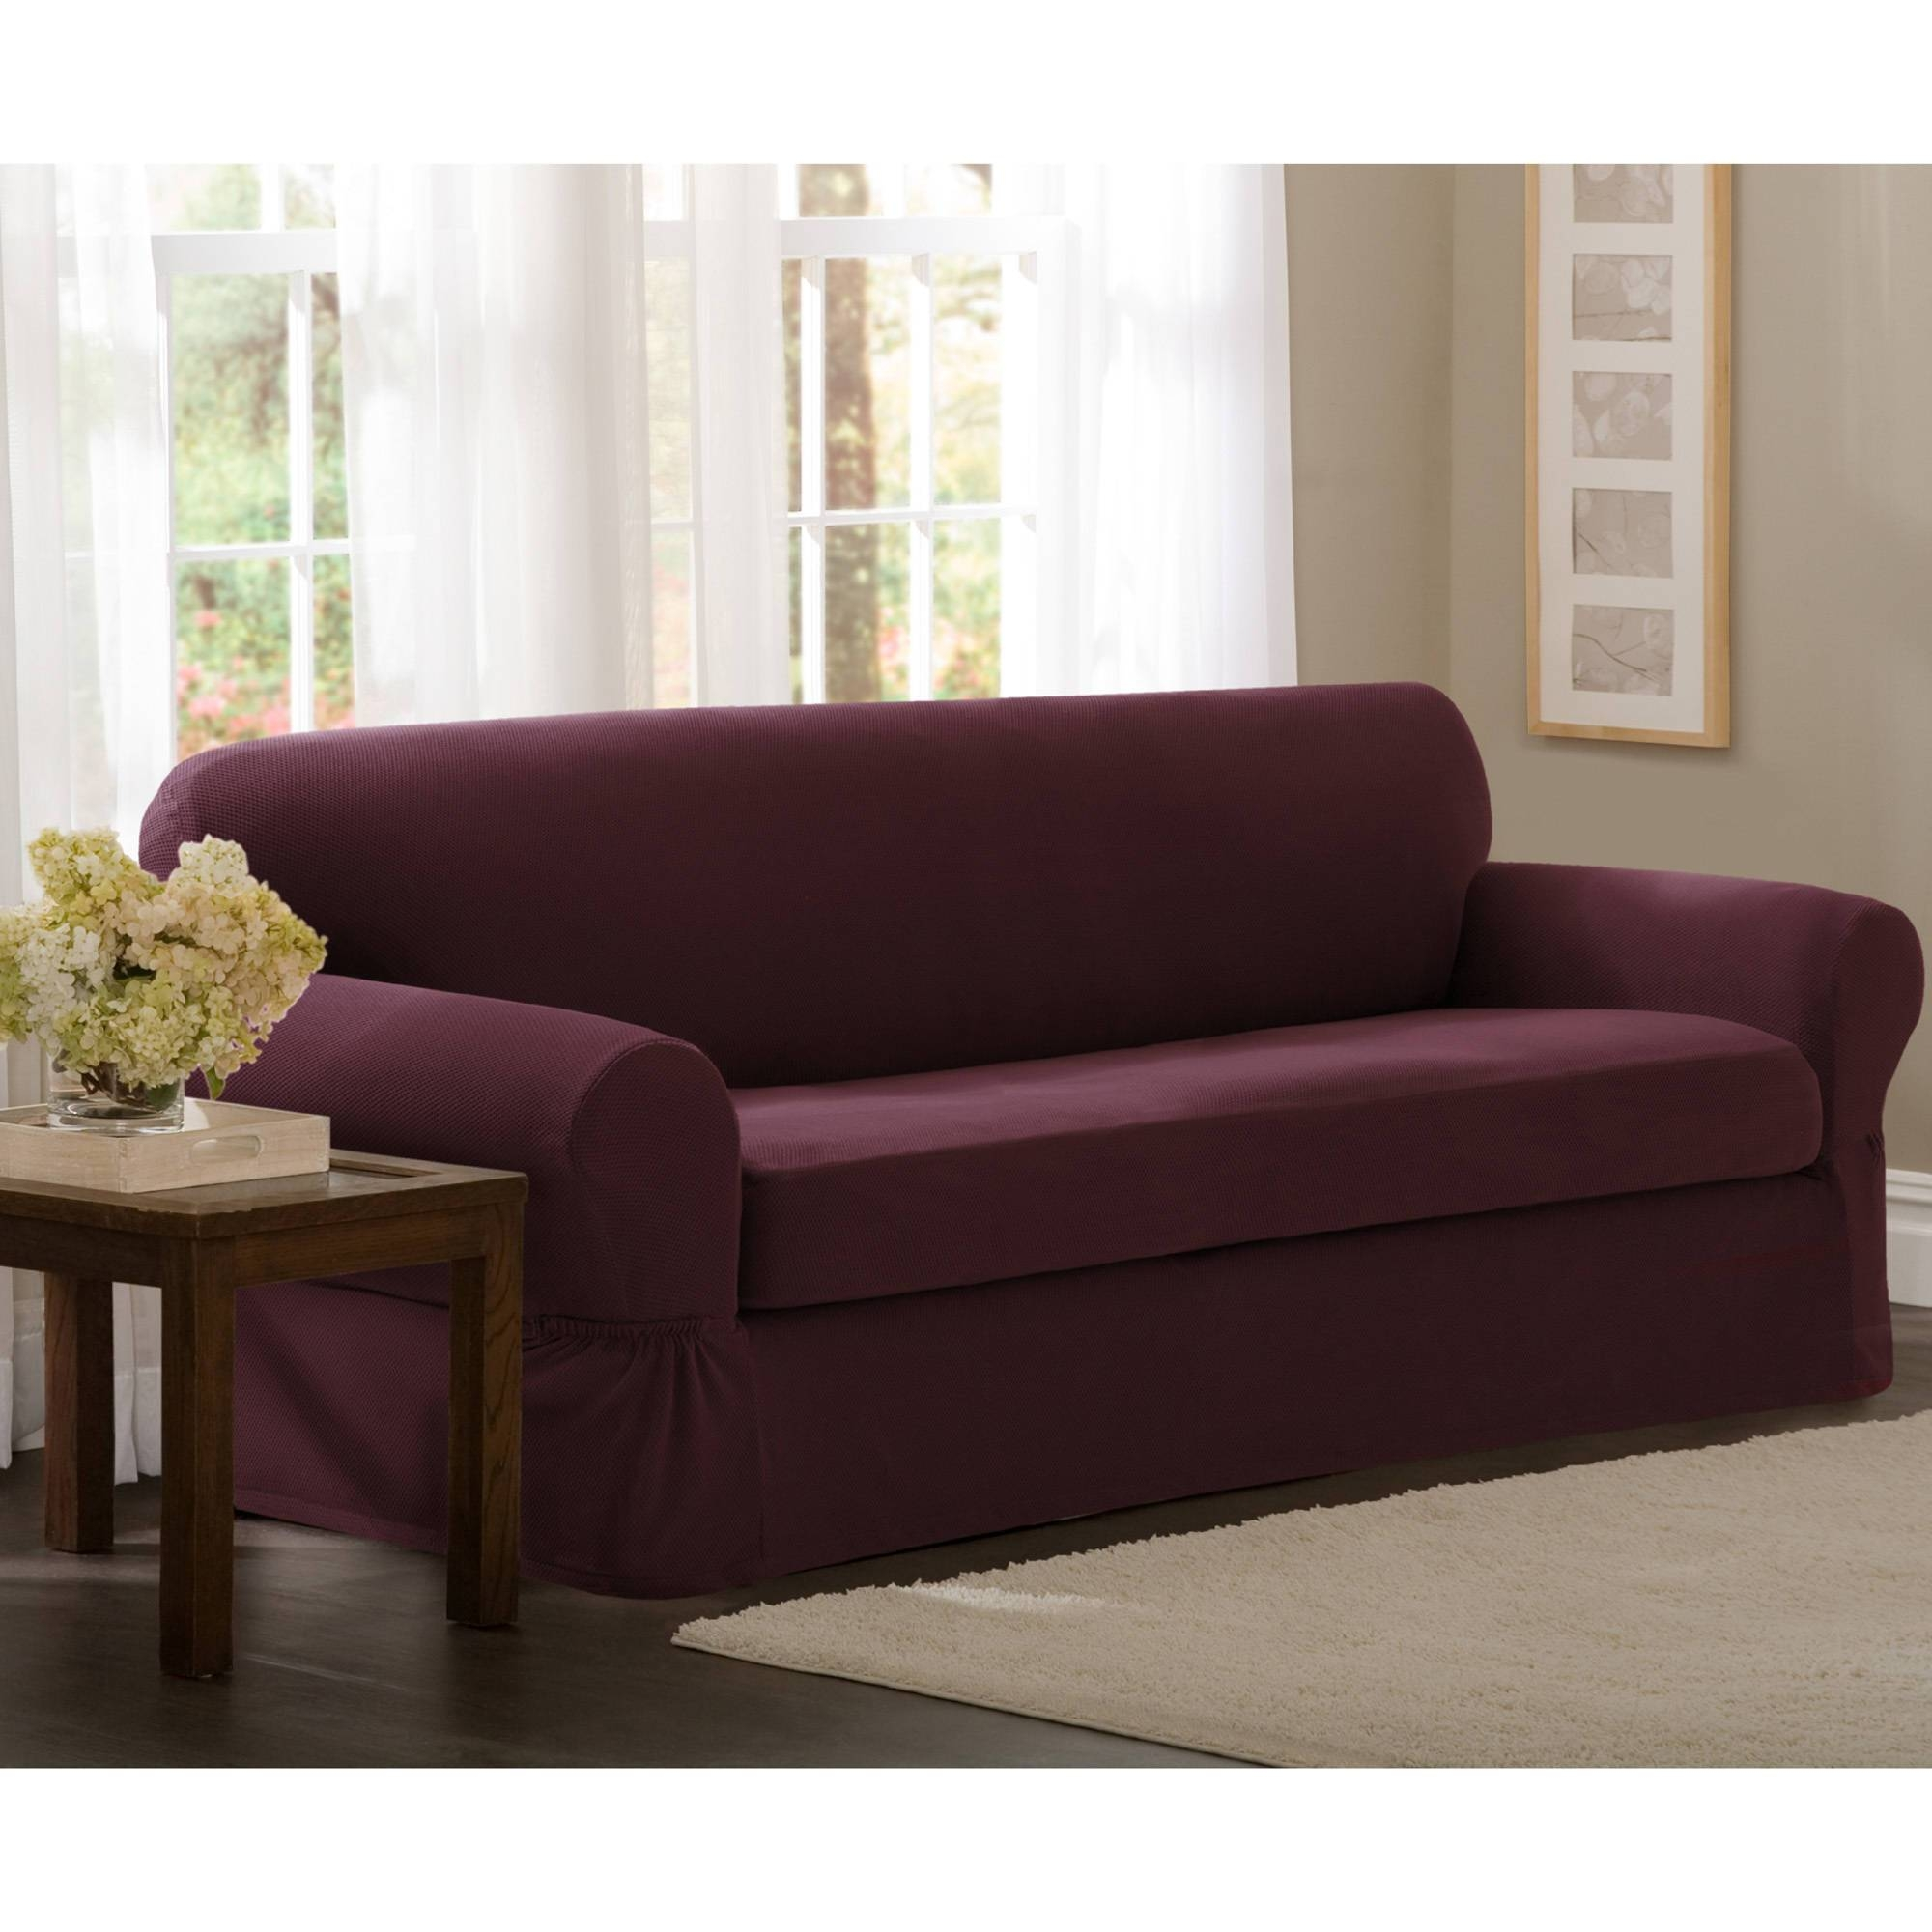 Maytex Stretch 2-Piece Sofa Slipcover - Walmart for 2 Piece Sofa Covers (Image 16 of 30)